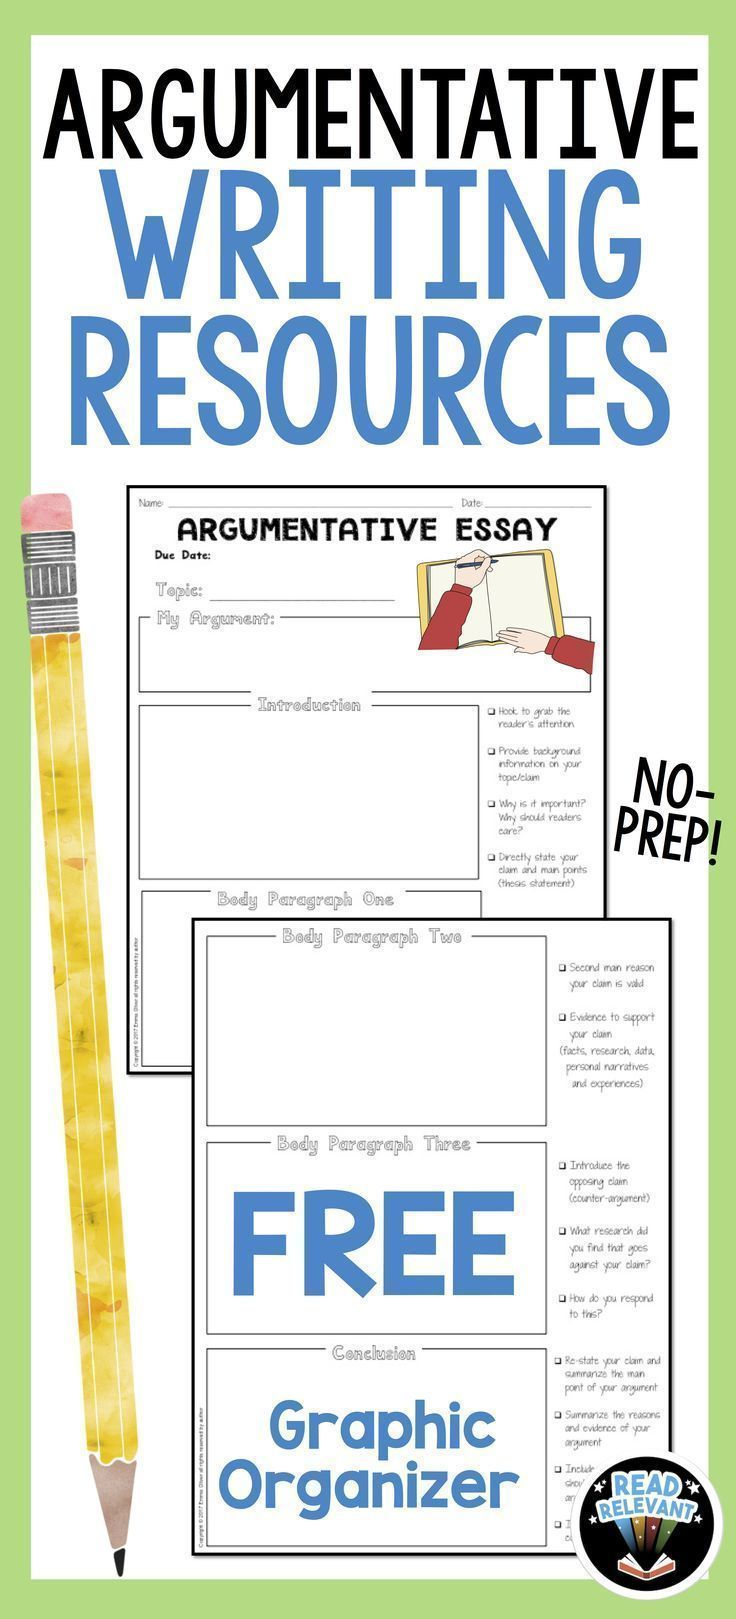 Narrative Essay Thesis Statement Examples Click To Get A Free Graphic Organizer With Writing Checklist For Planning  And Prewriting Of Argumentative Or Persuasive Essays Romeo And Juliet Essay Thesis also English Essays For High School Students Argumentative Essay Writing Resources  Free Graphic Organizer  Best Man Speech Writing Services